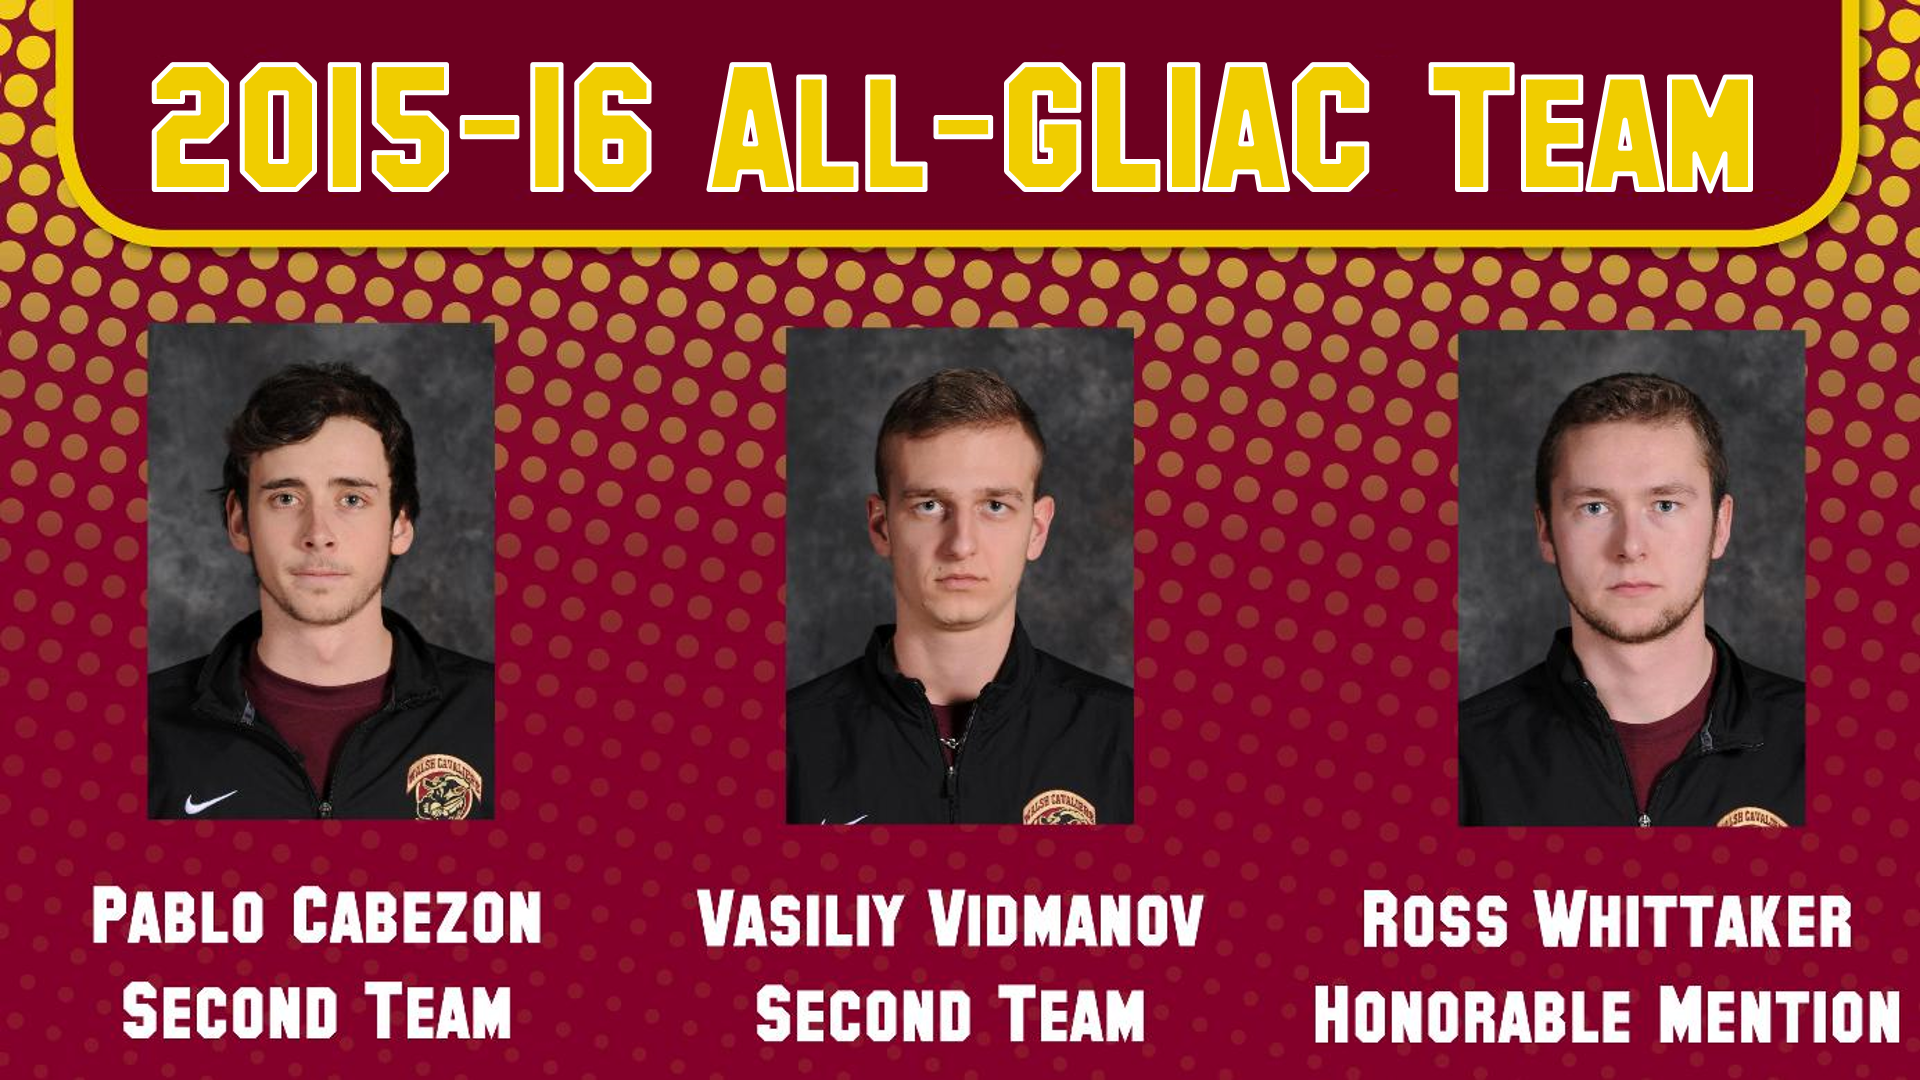 Cabezon, Vidmanov, Whittaker Earn Repeat All-GLIAC Honors